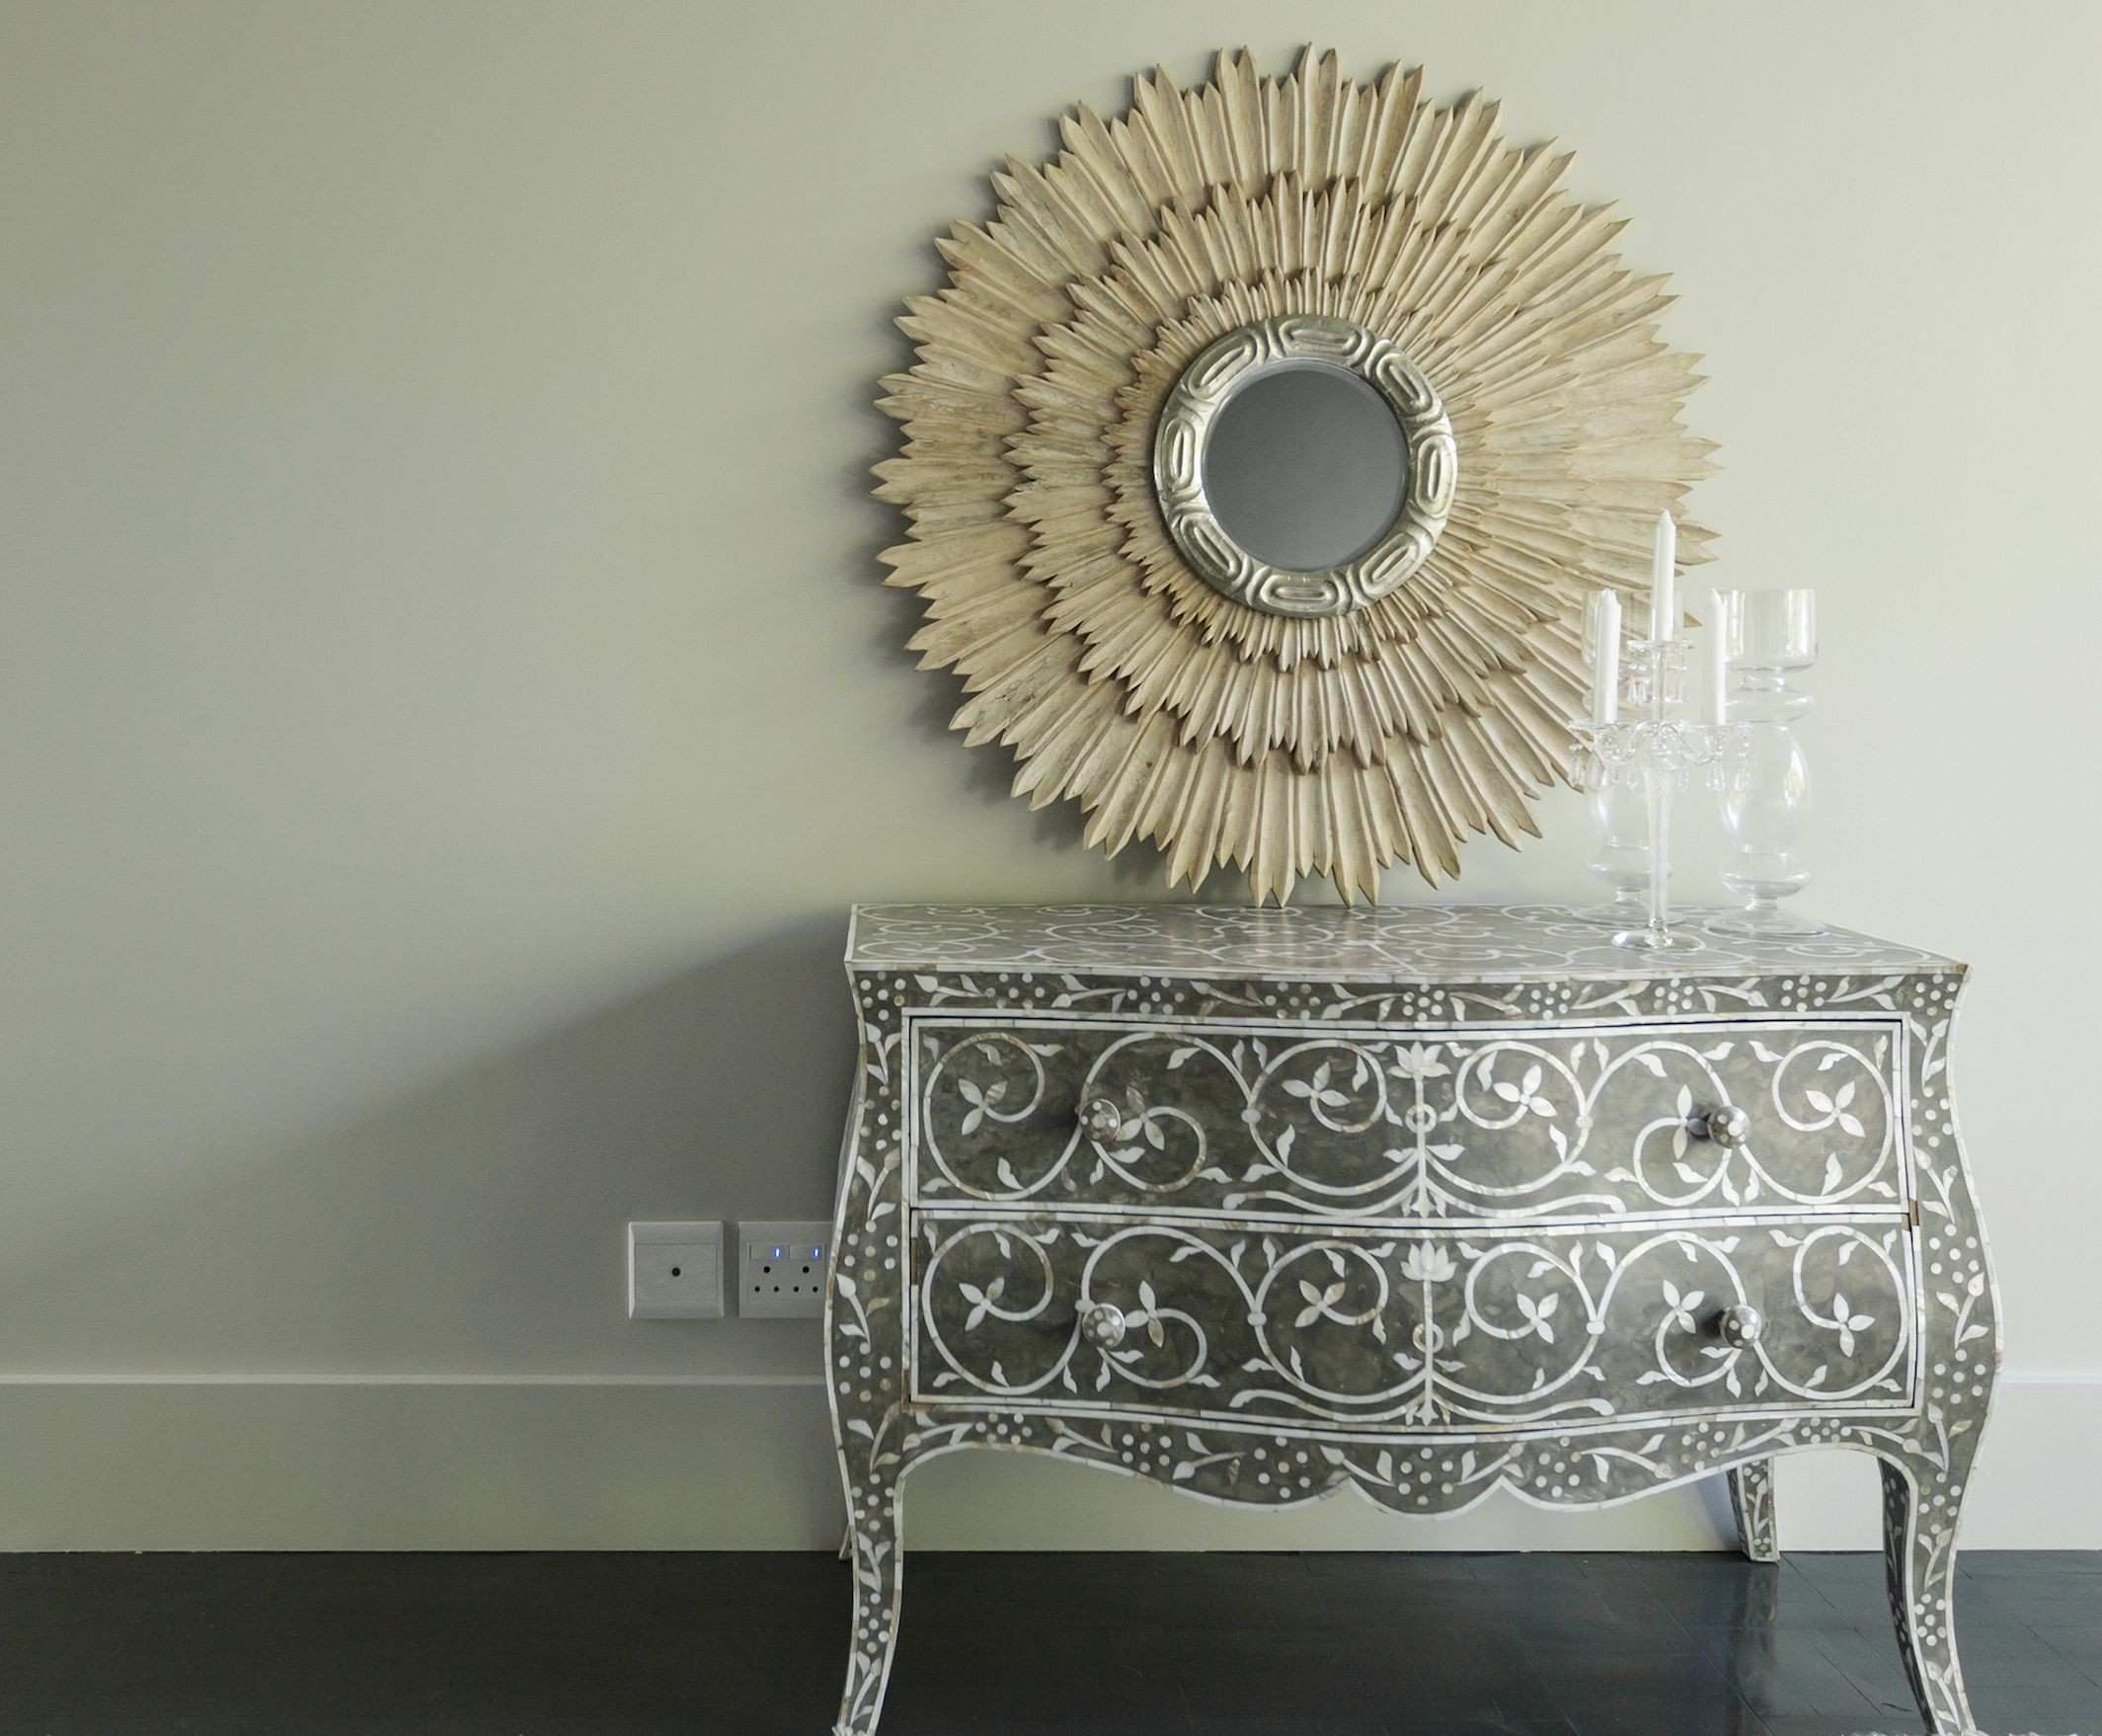 Use Feng Shui to Correct the Bad Energy of a Mirror Facing the Front